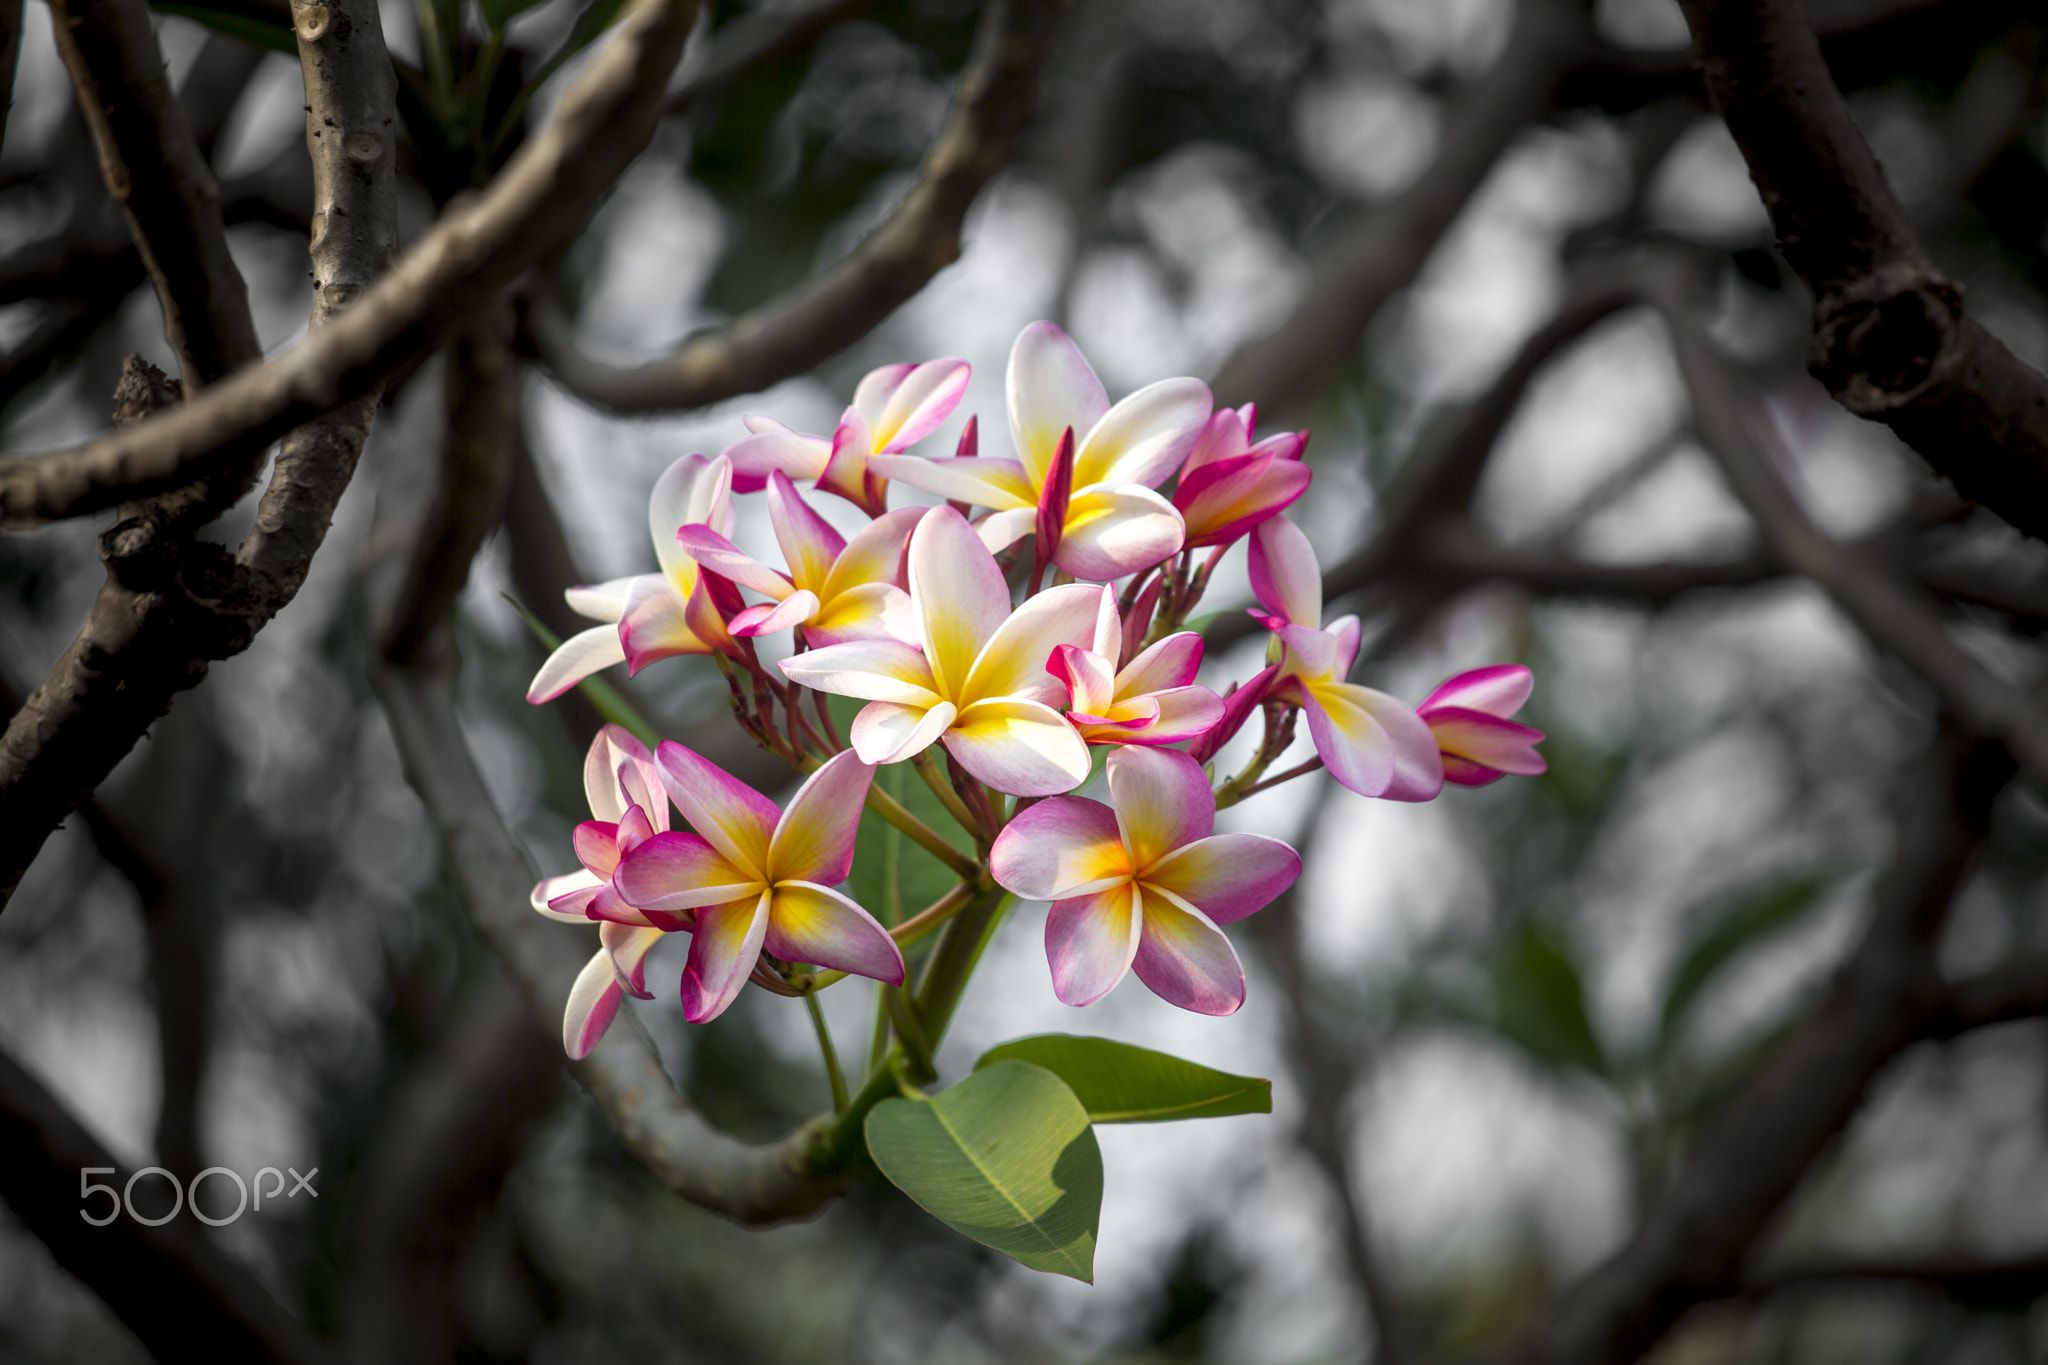 Lal Gulachin Known As Lal Kath Golap Wallpaper Iphone Cute Tropical Flowers Flowers